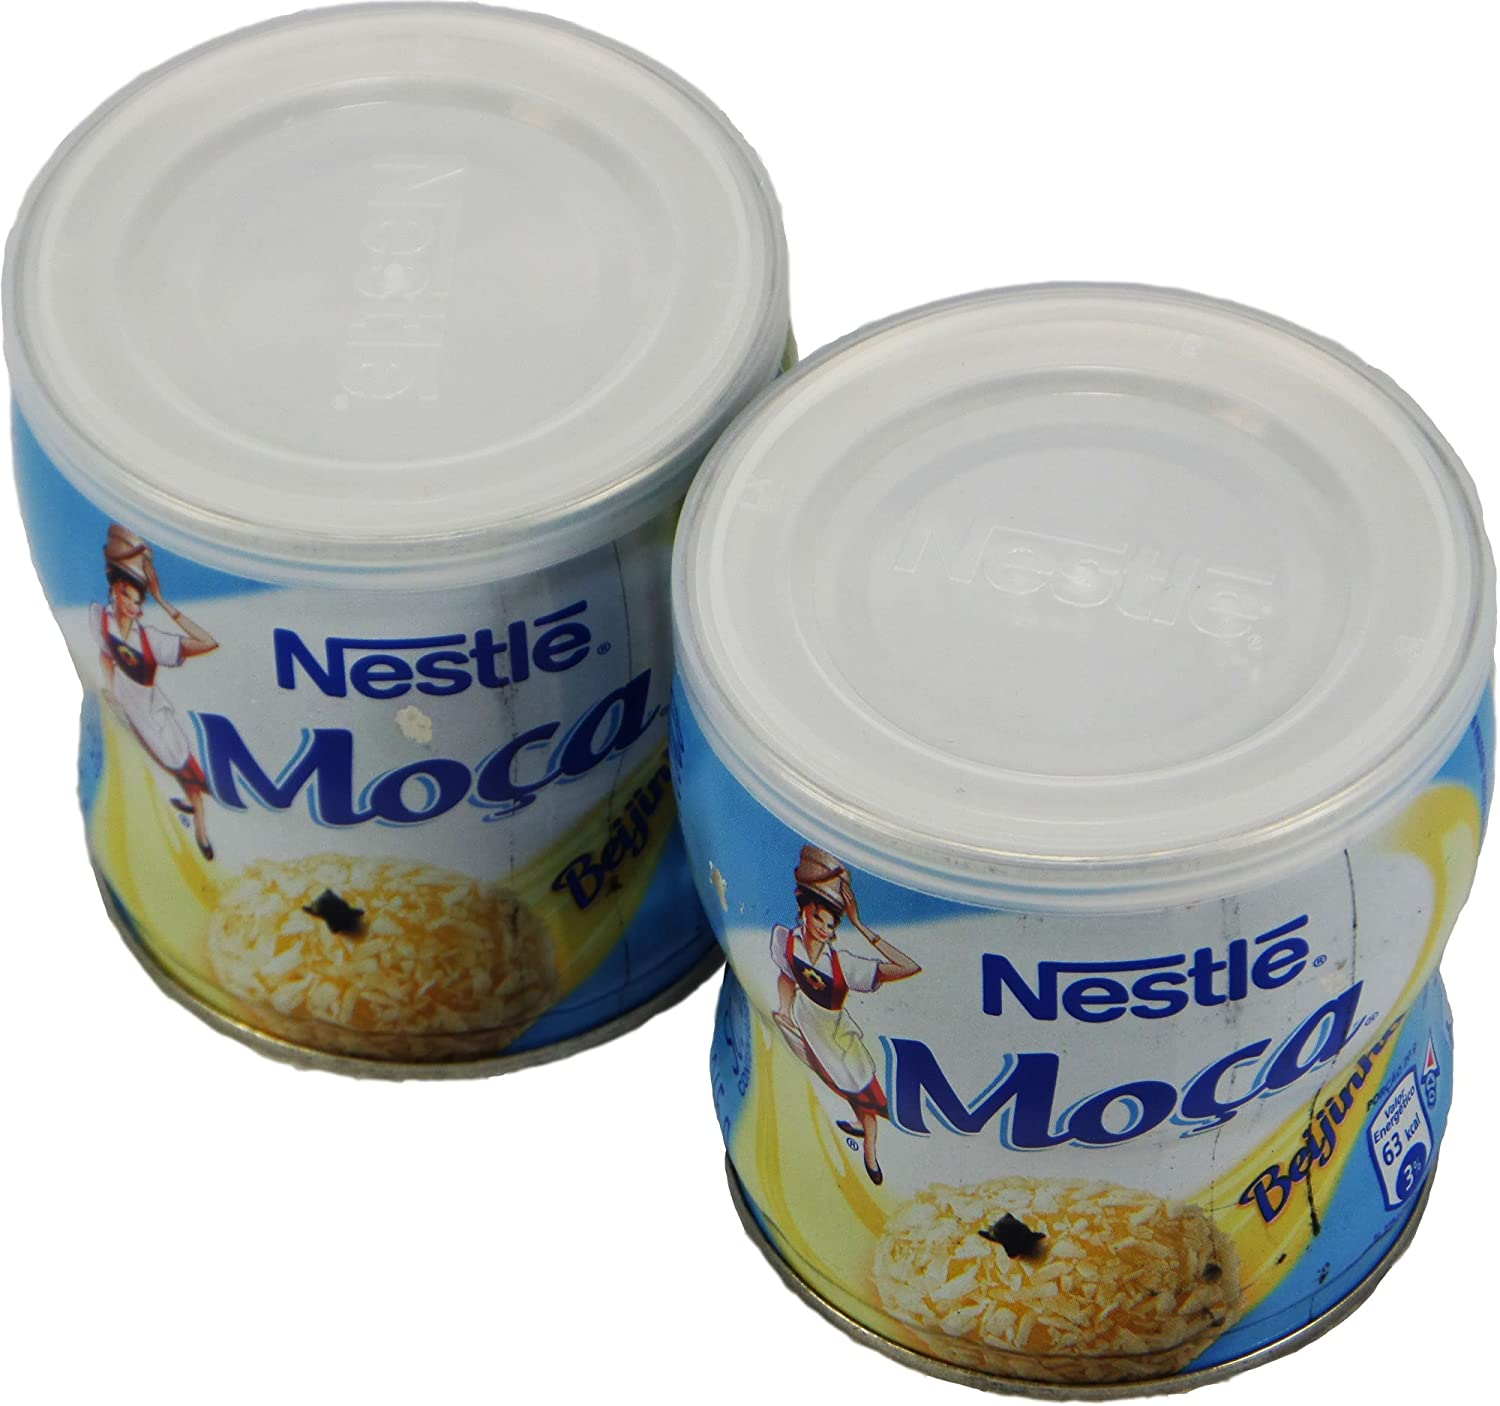 Amazon.com : Nestlé - Moça Fiesta - Coconut Desert - 12.9oz. (PACK OF 02) | Beijinho - 365g : Gourmet Food : Grocery & Gourmet Food